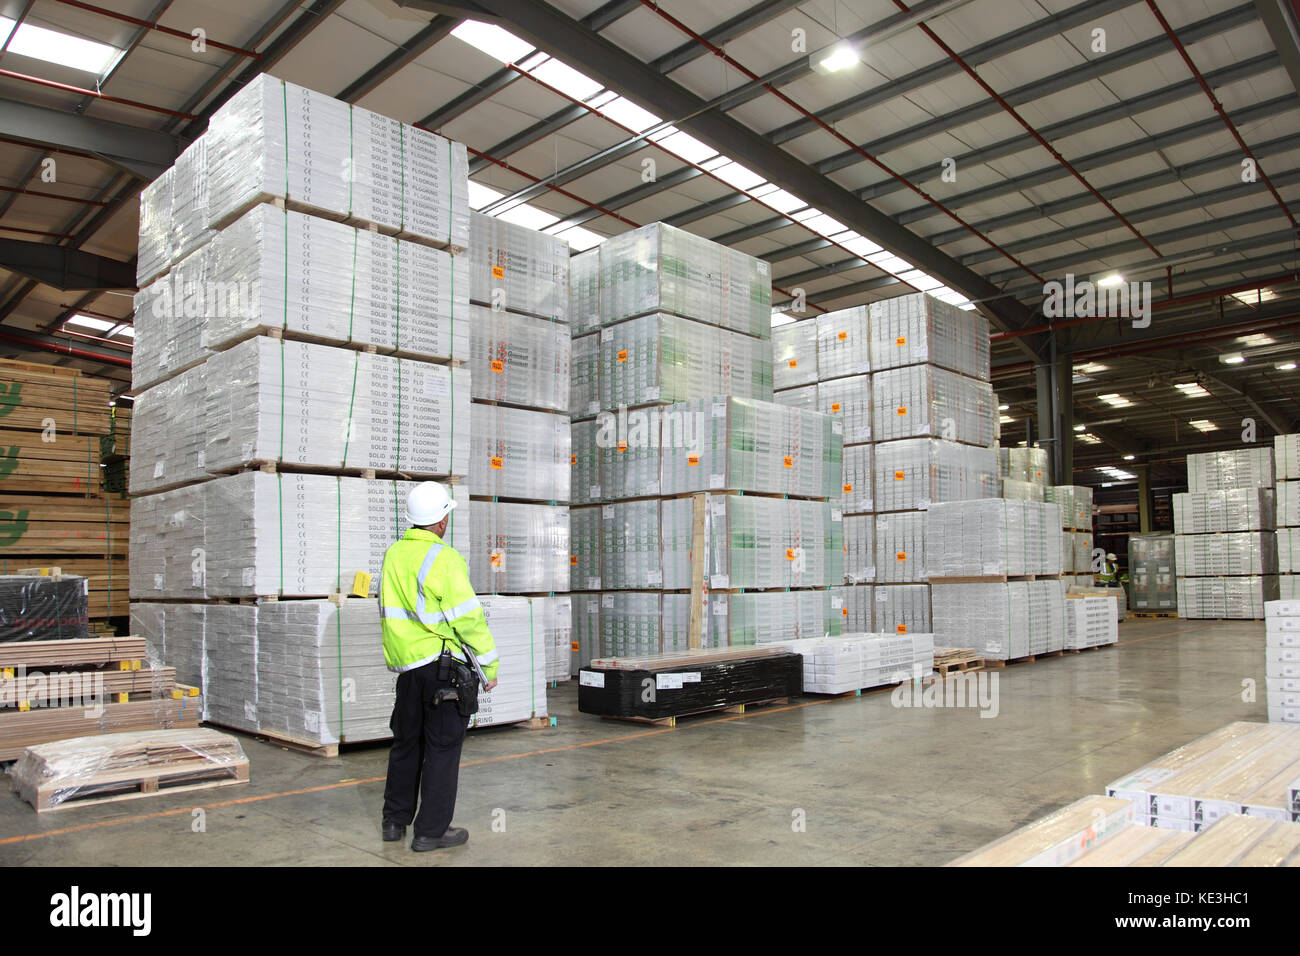 Shrink-wrapped packs of timber flooring and sheet products stacked in a modern, UK distribution warehouse. - Stock Image